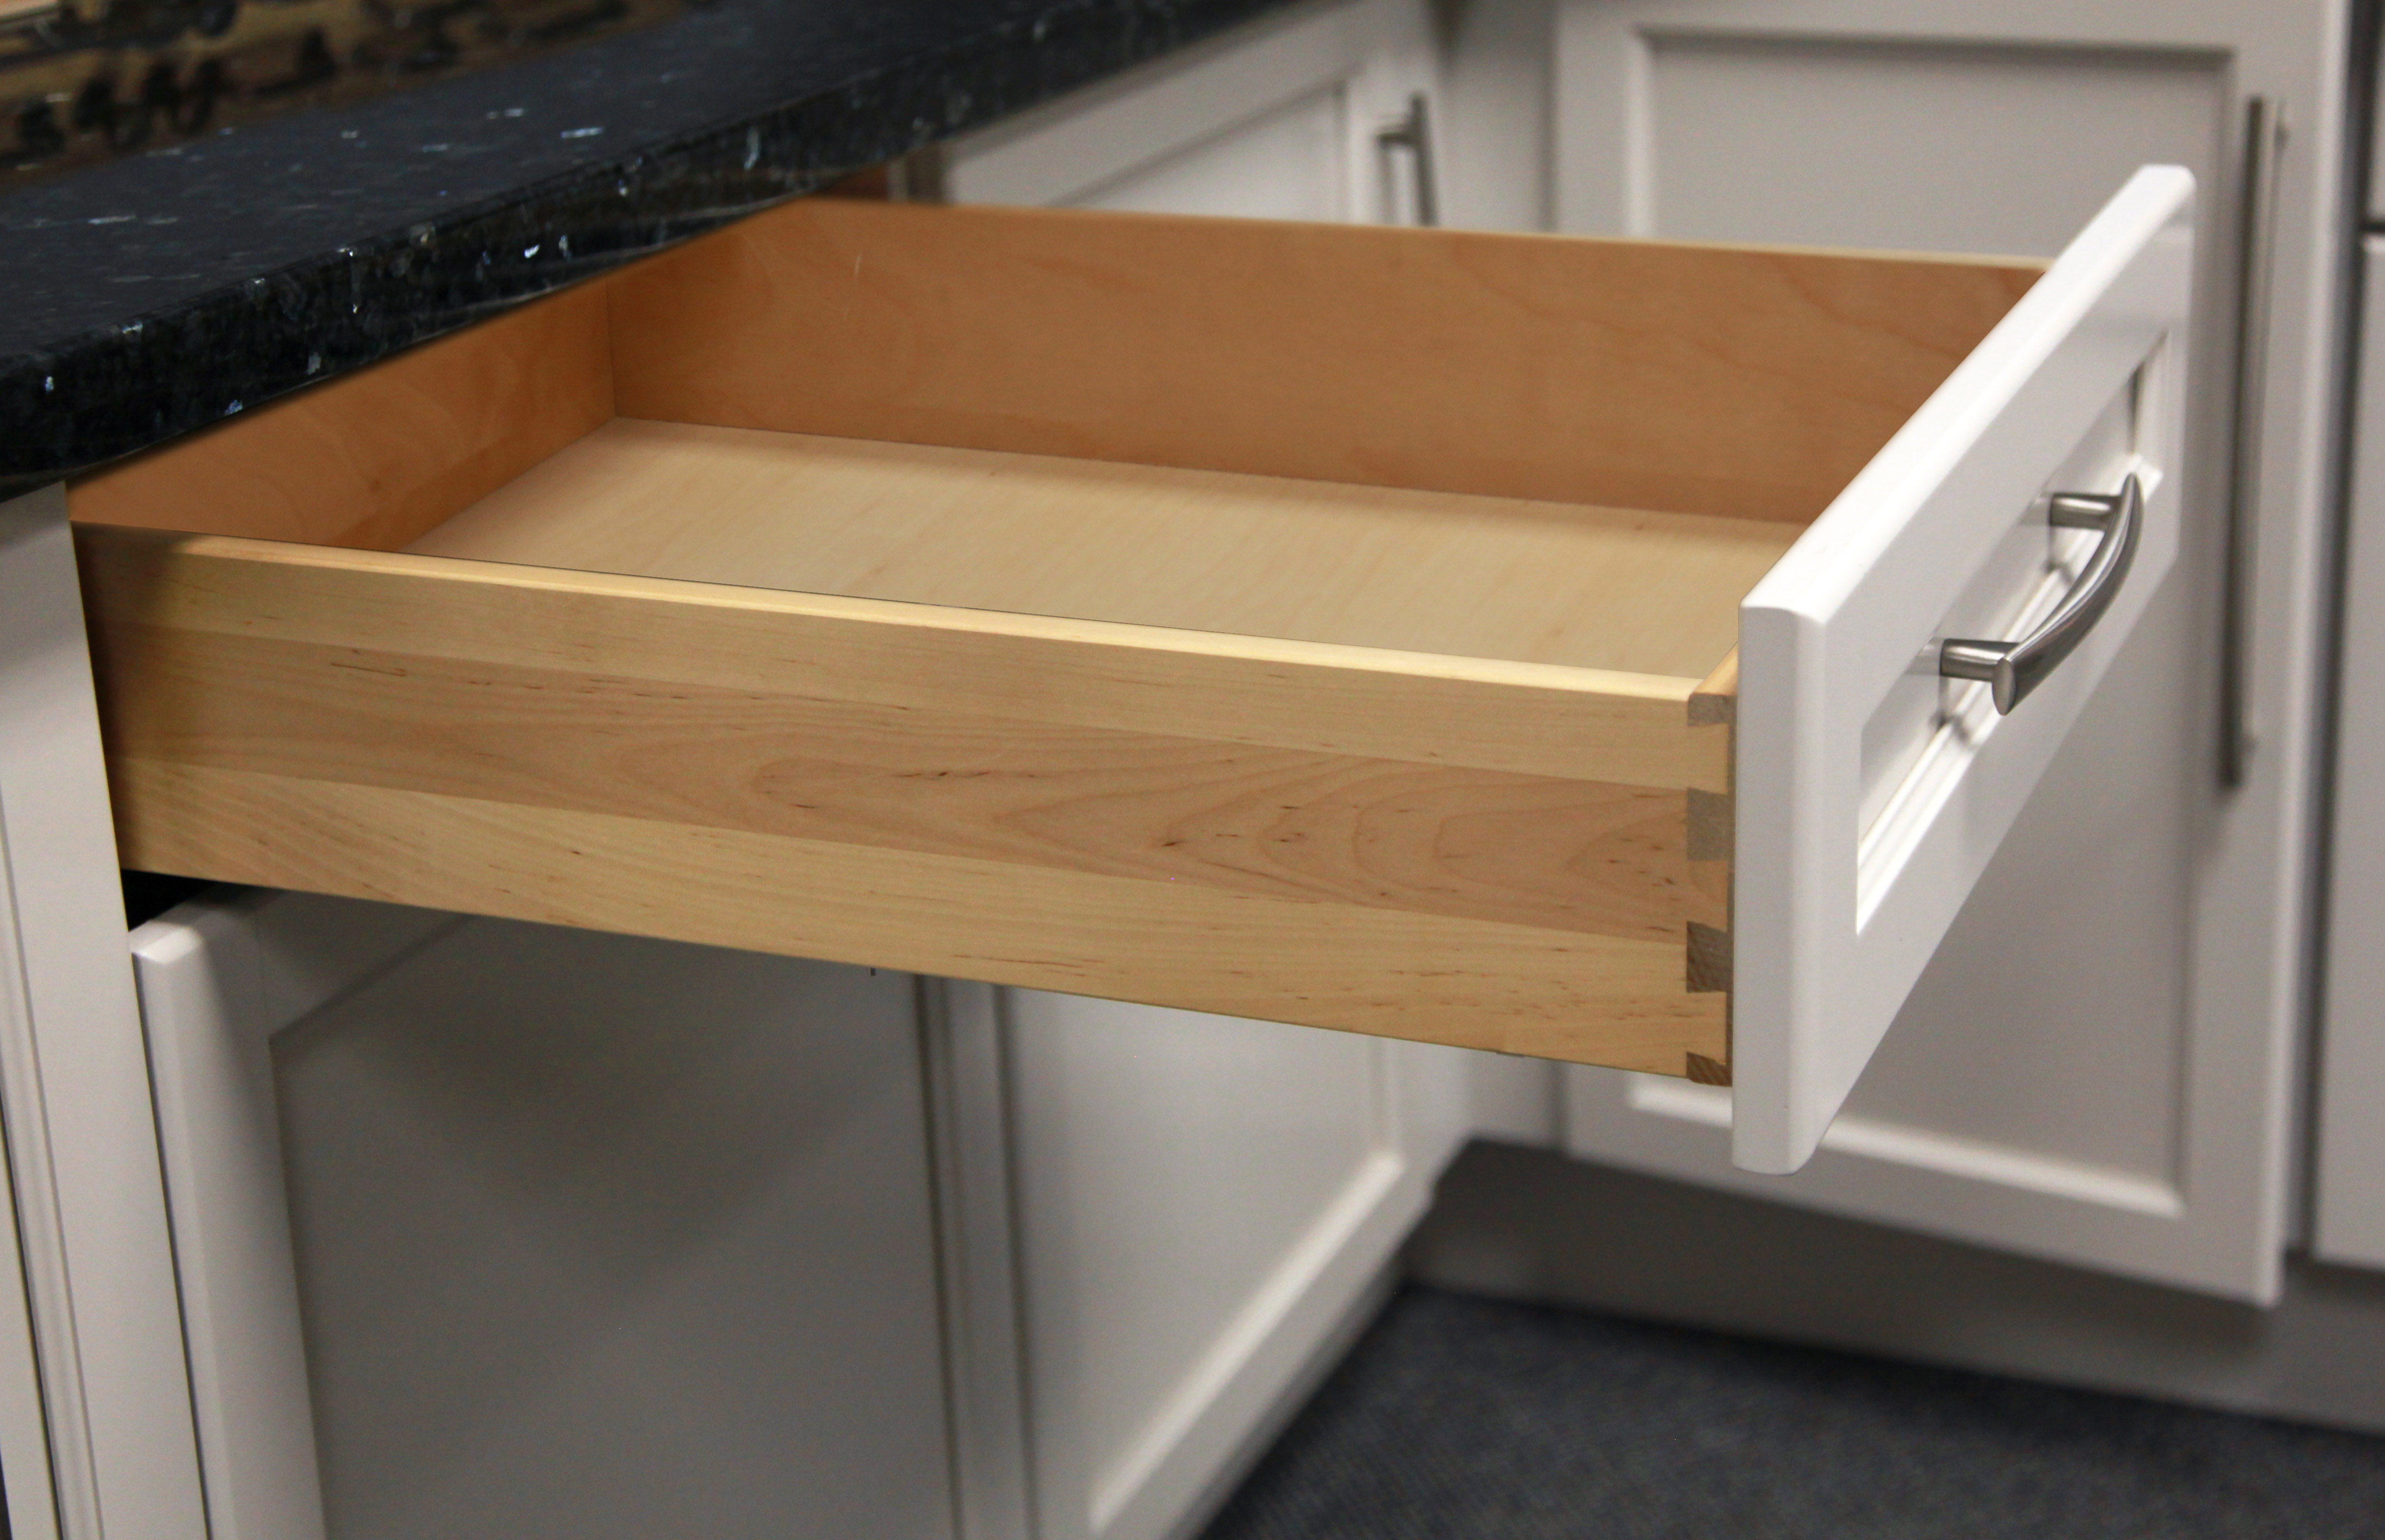 lowes undermount uncategorized slides inspiration ideas bottom fascinating for heavy drawer pic duty drawers and mount imgid